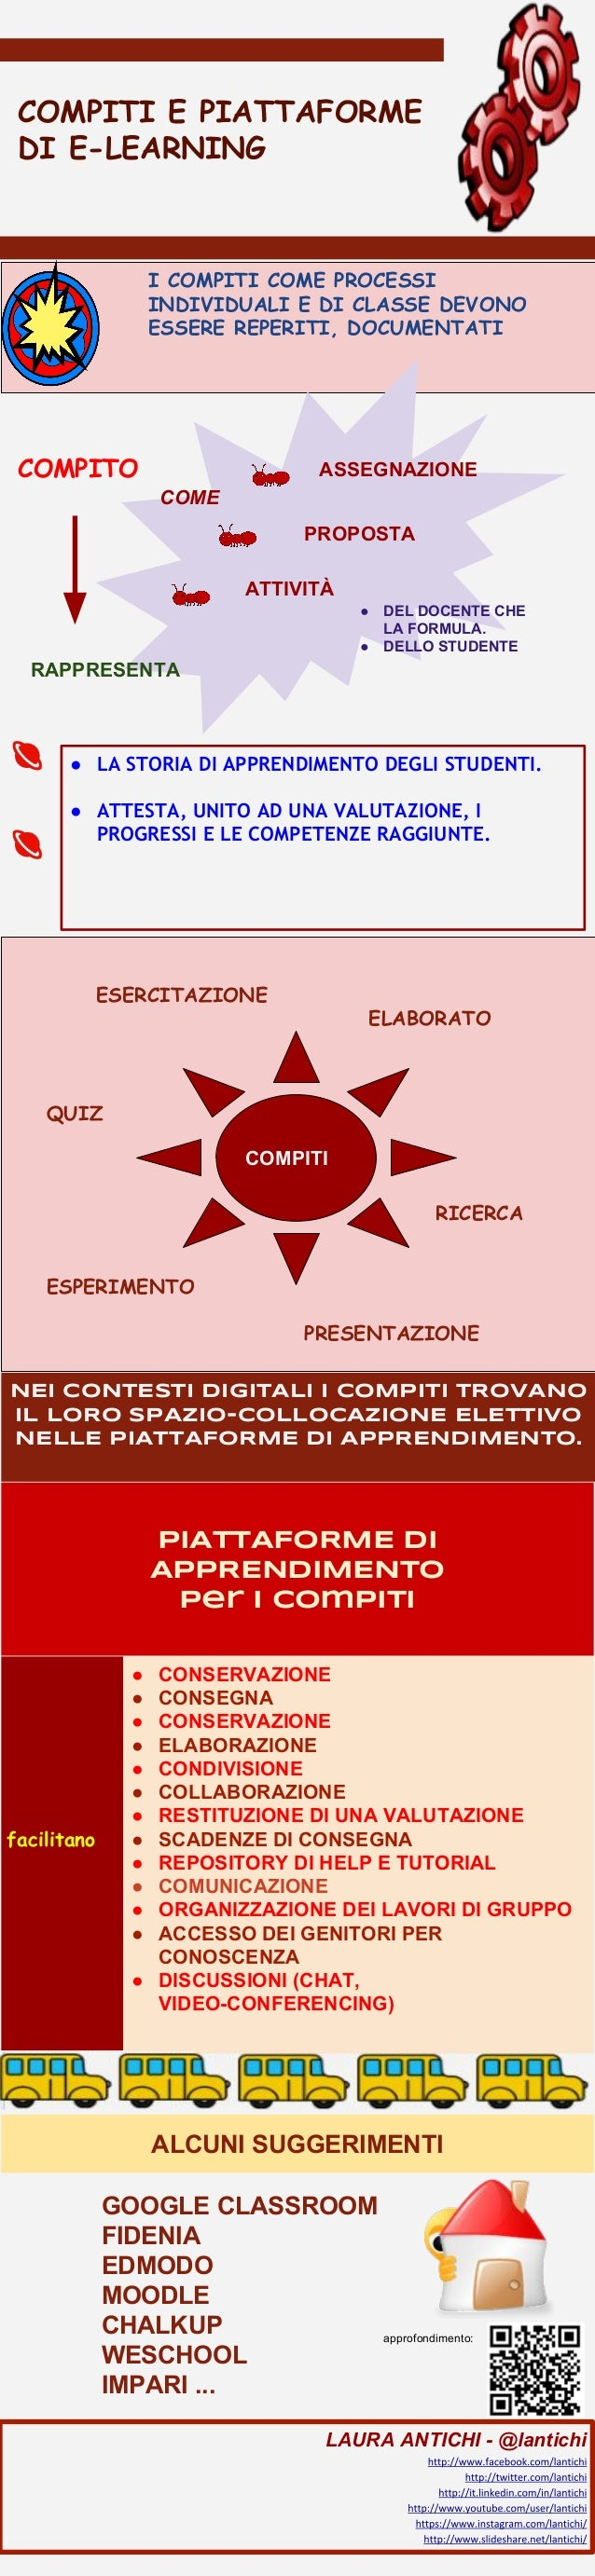 COMPITI E PIATTAFORME DI E-LEARNING I COMPITI COME PROCESSI INDIVIDUALI E DI CLASSE DEVONO ESSERE REPERITI, DOCUMENTATI CO...